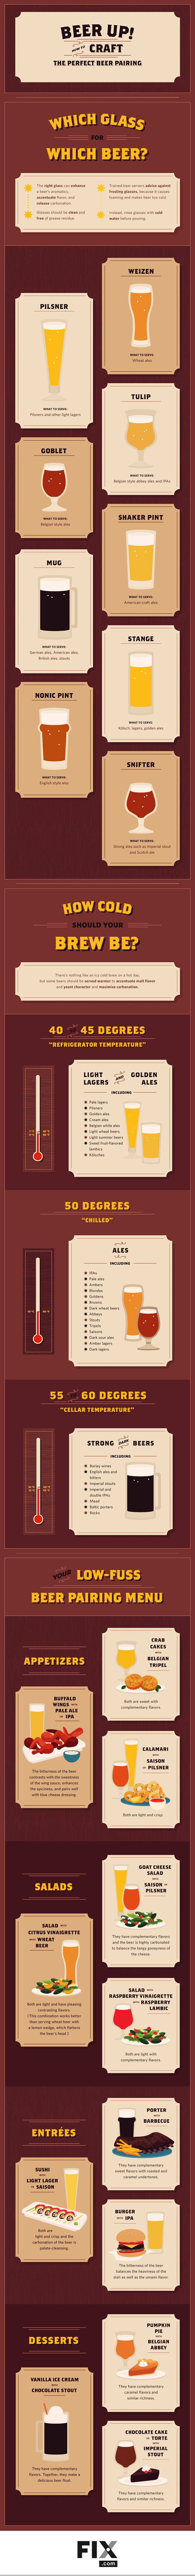 Beer Up: How to Craft the Perfect Beer Pairing #Infographic